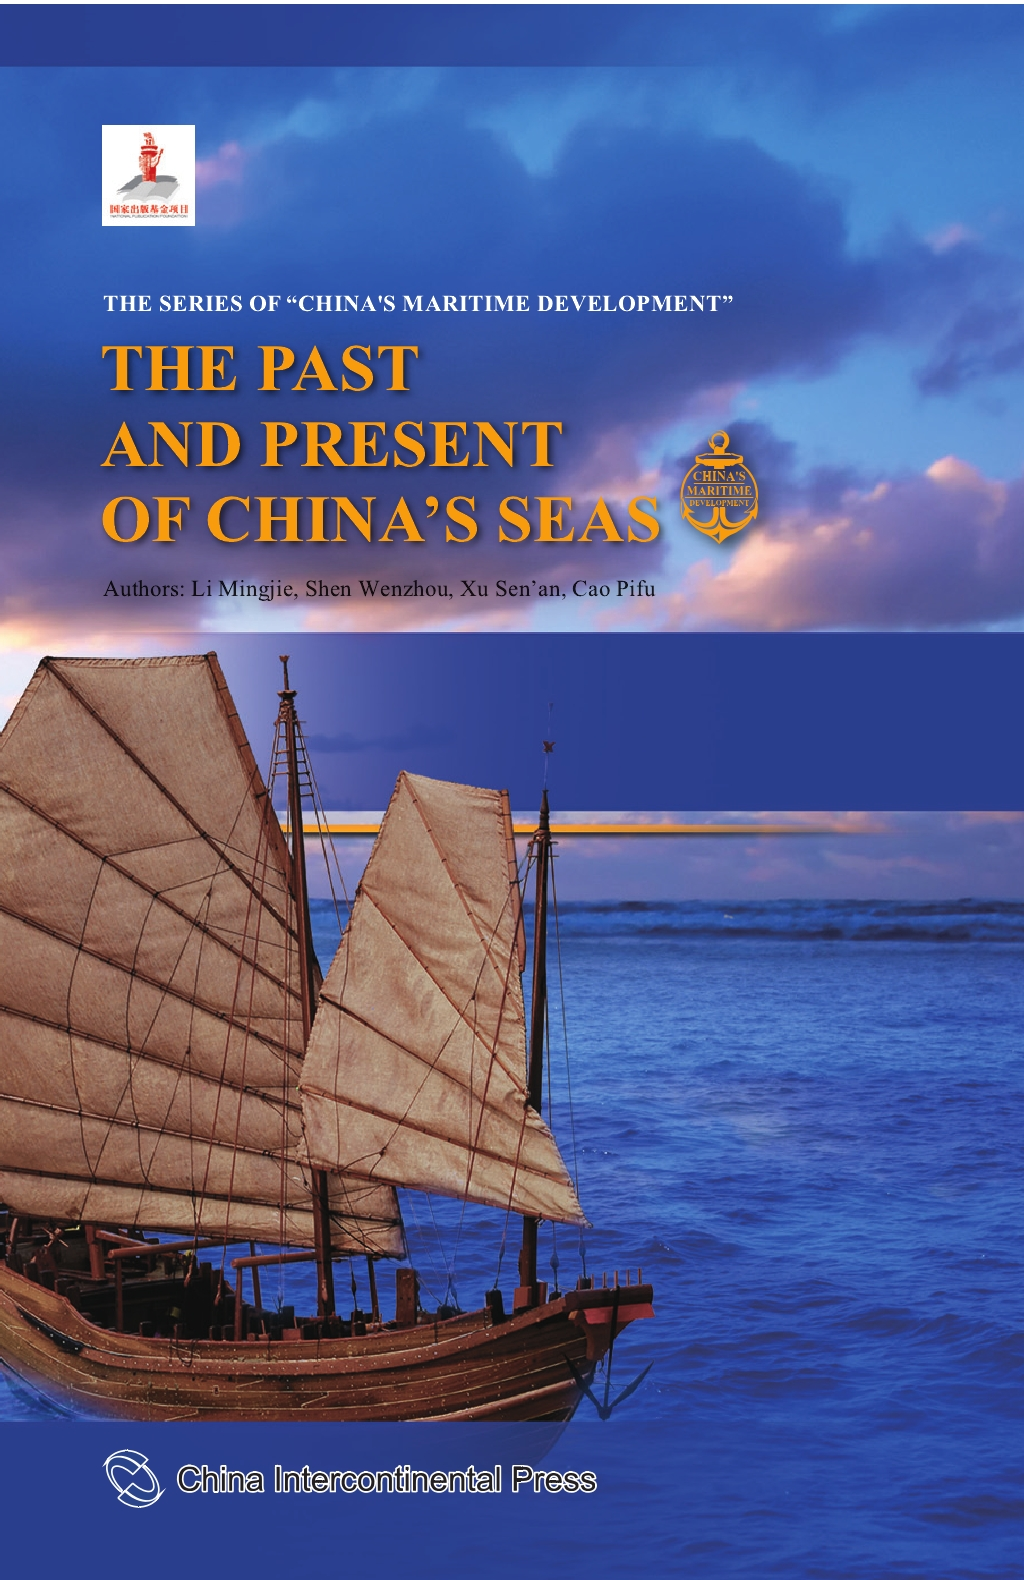 The Past and Present of China's Seas